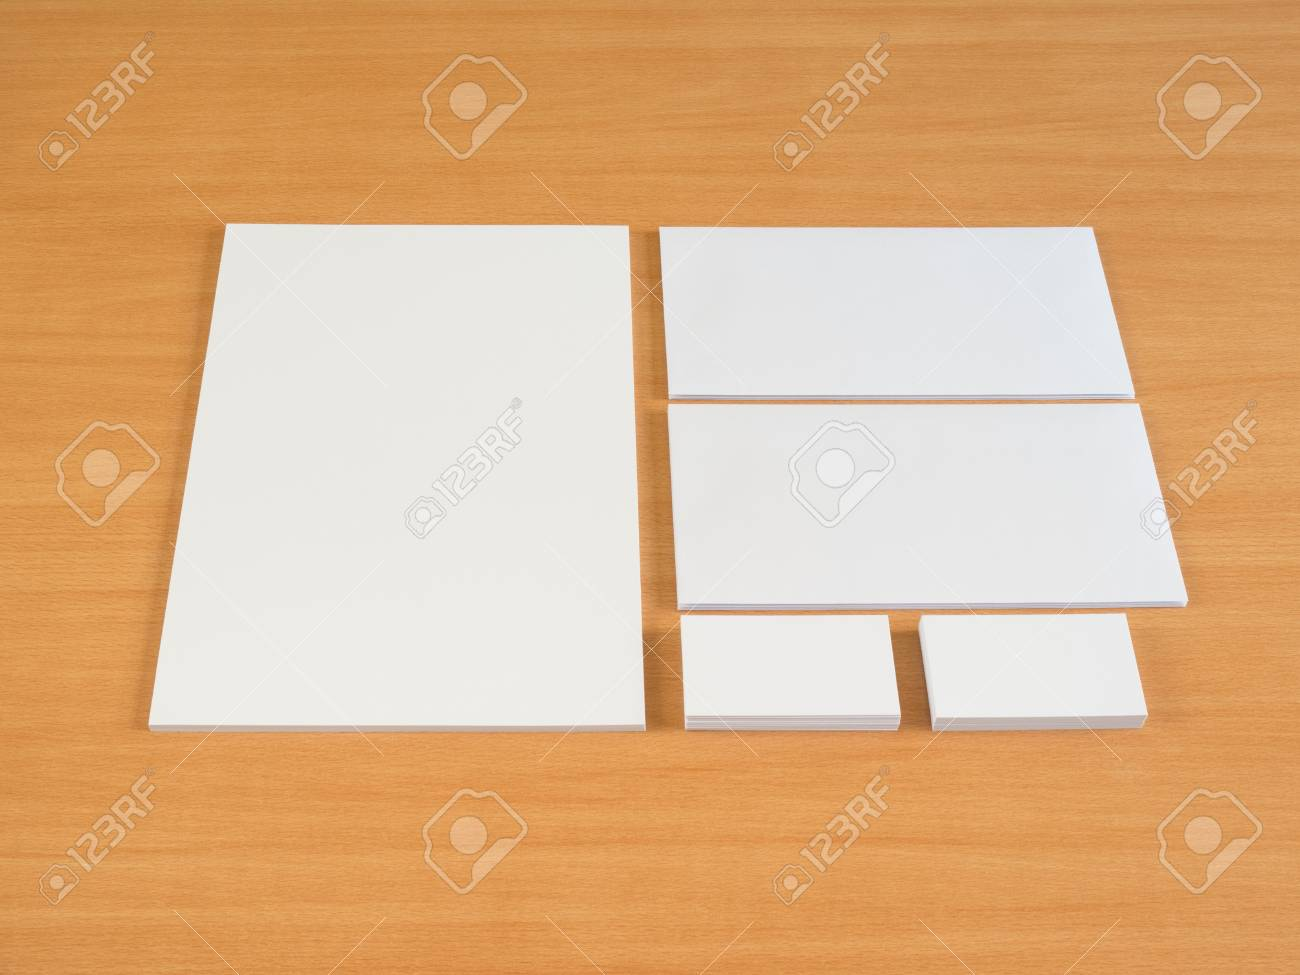 Stationary Set. Business Cards And Envelopes Isolated On Wooden ...